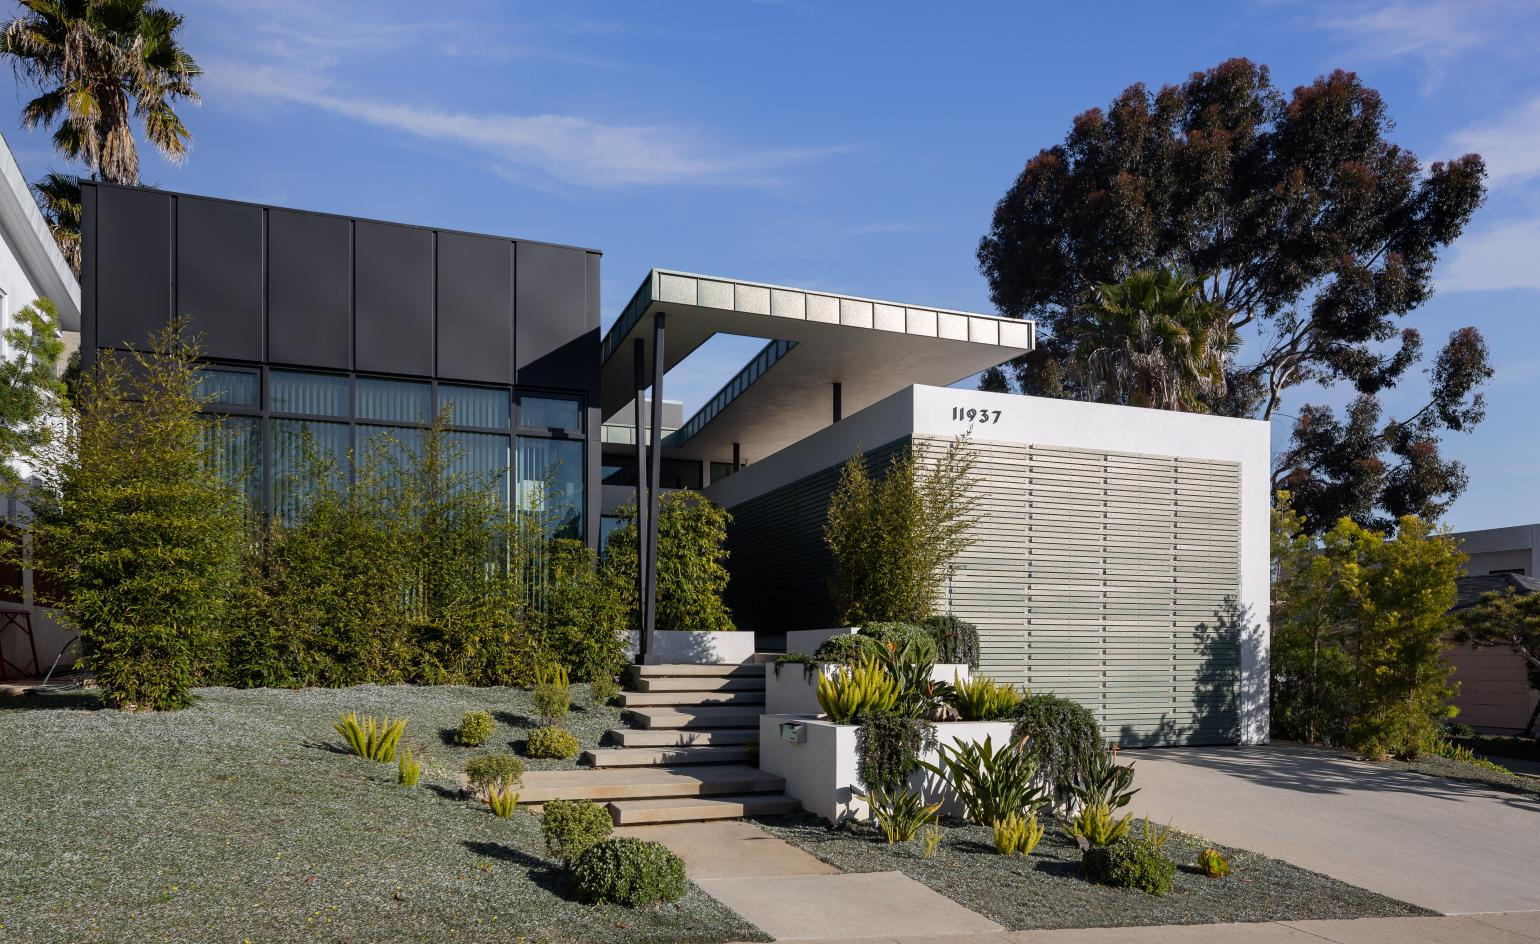 California tract house transformed into modernist home